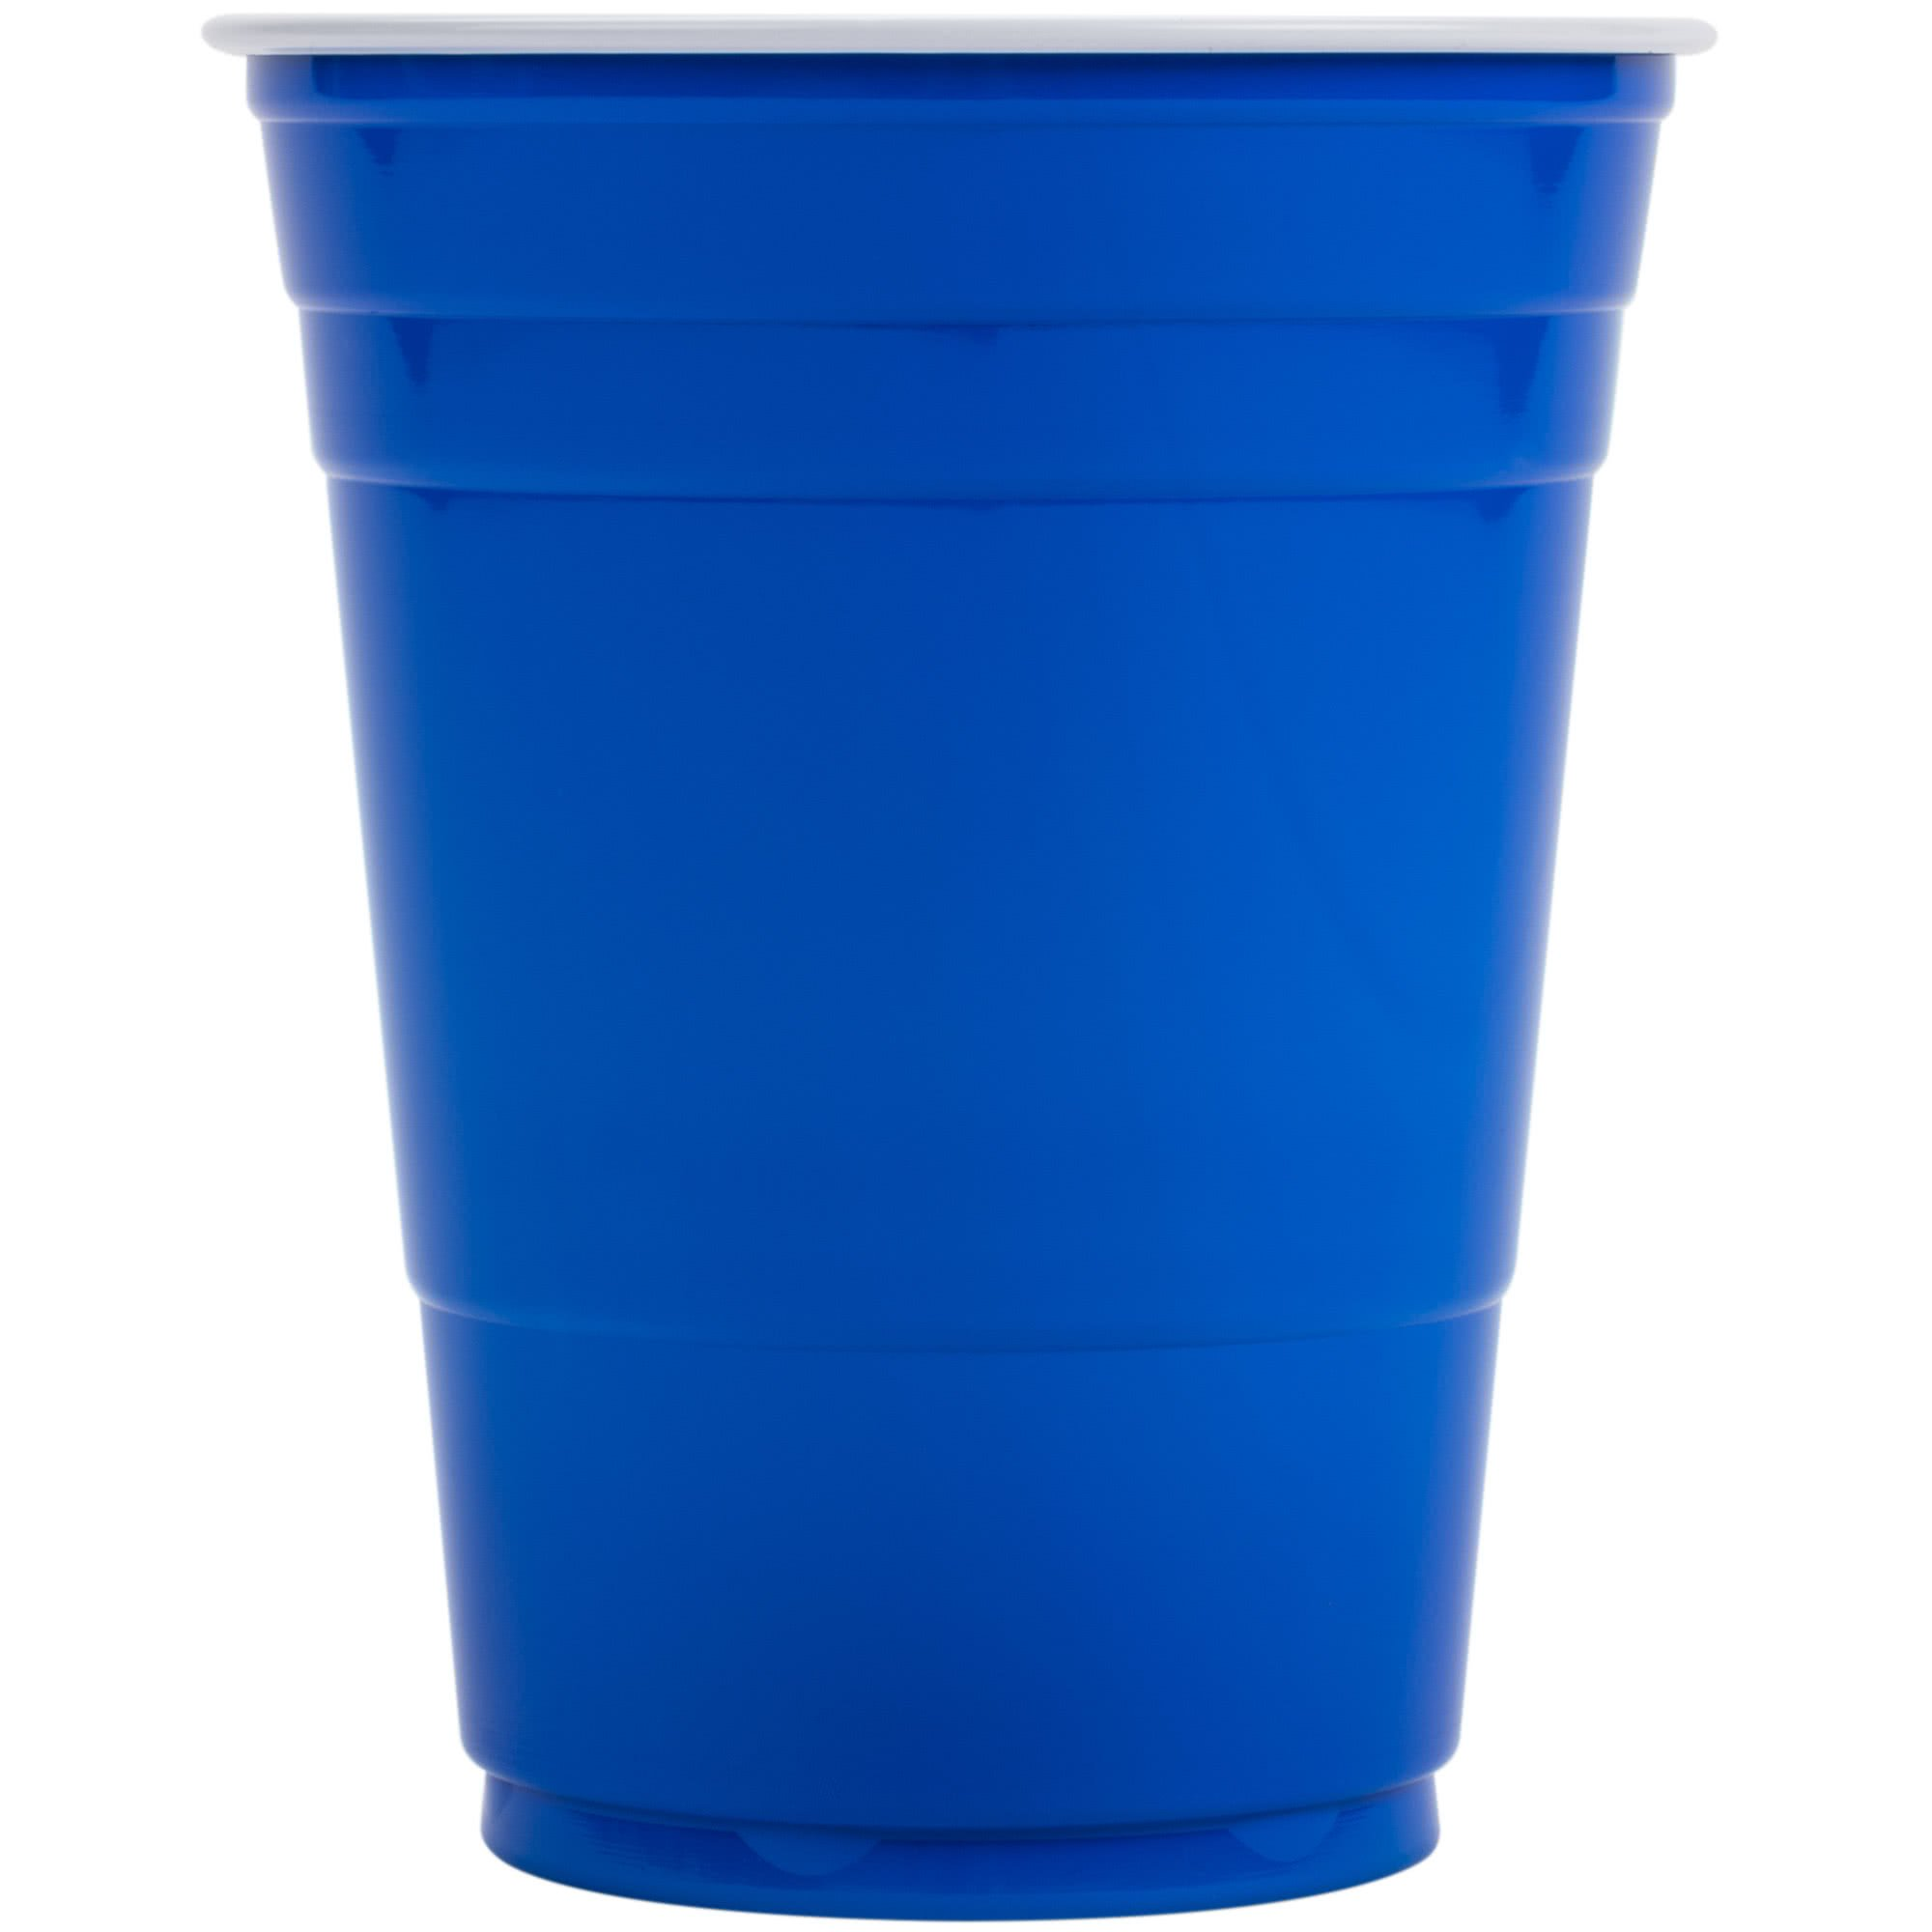 TableTop King P16B 16 oz. Blue Plastic Cup - 1000/Case by TableTop King